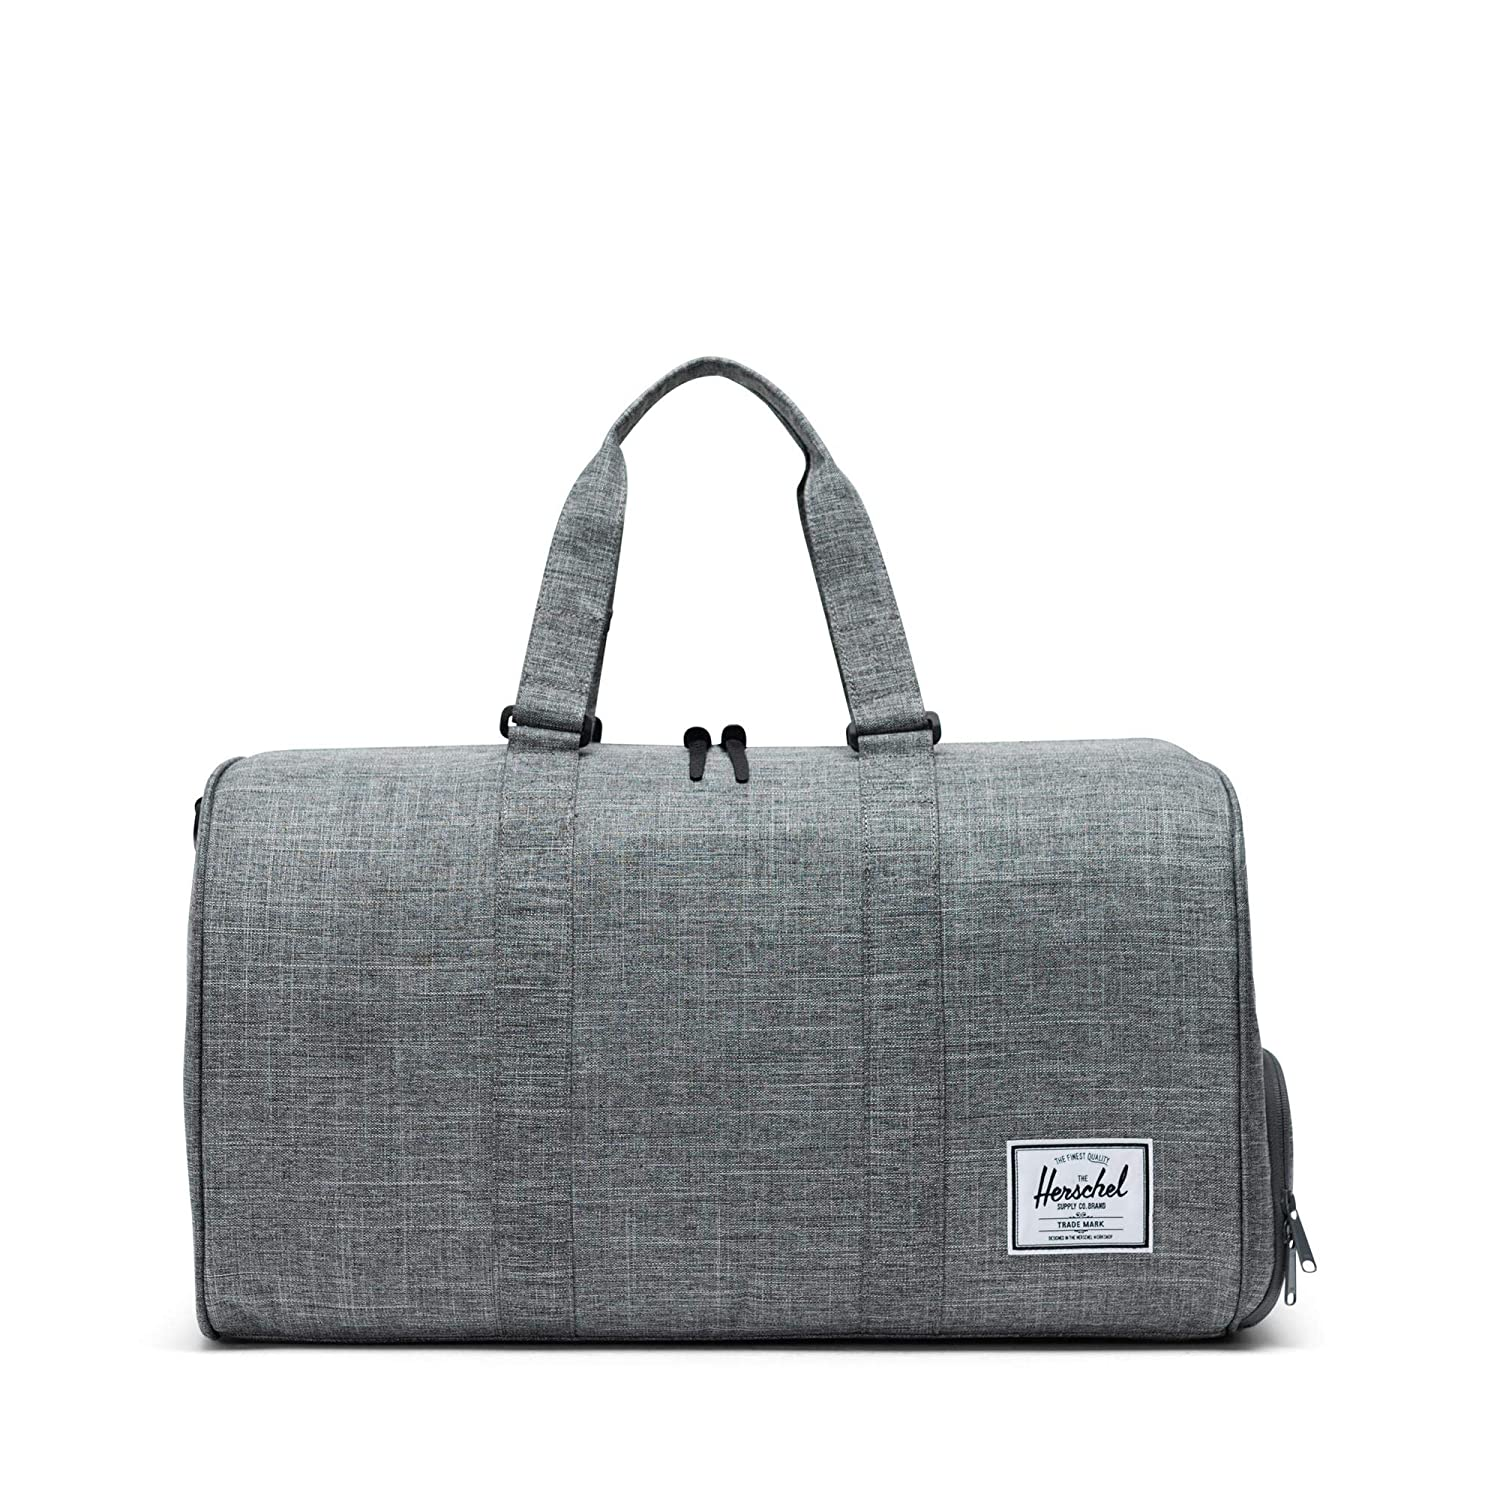 be6a6f755 Amazon.com | Herschel Novel Duffle Bag, Raven Crosshatch, One Size | Travel  Duffels